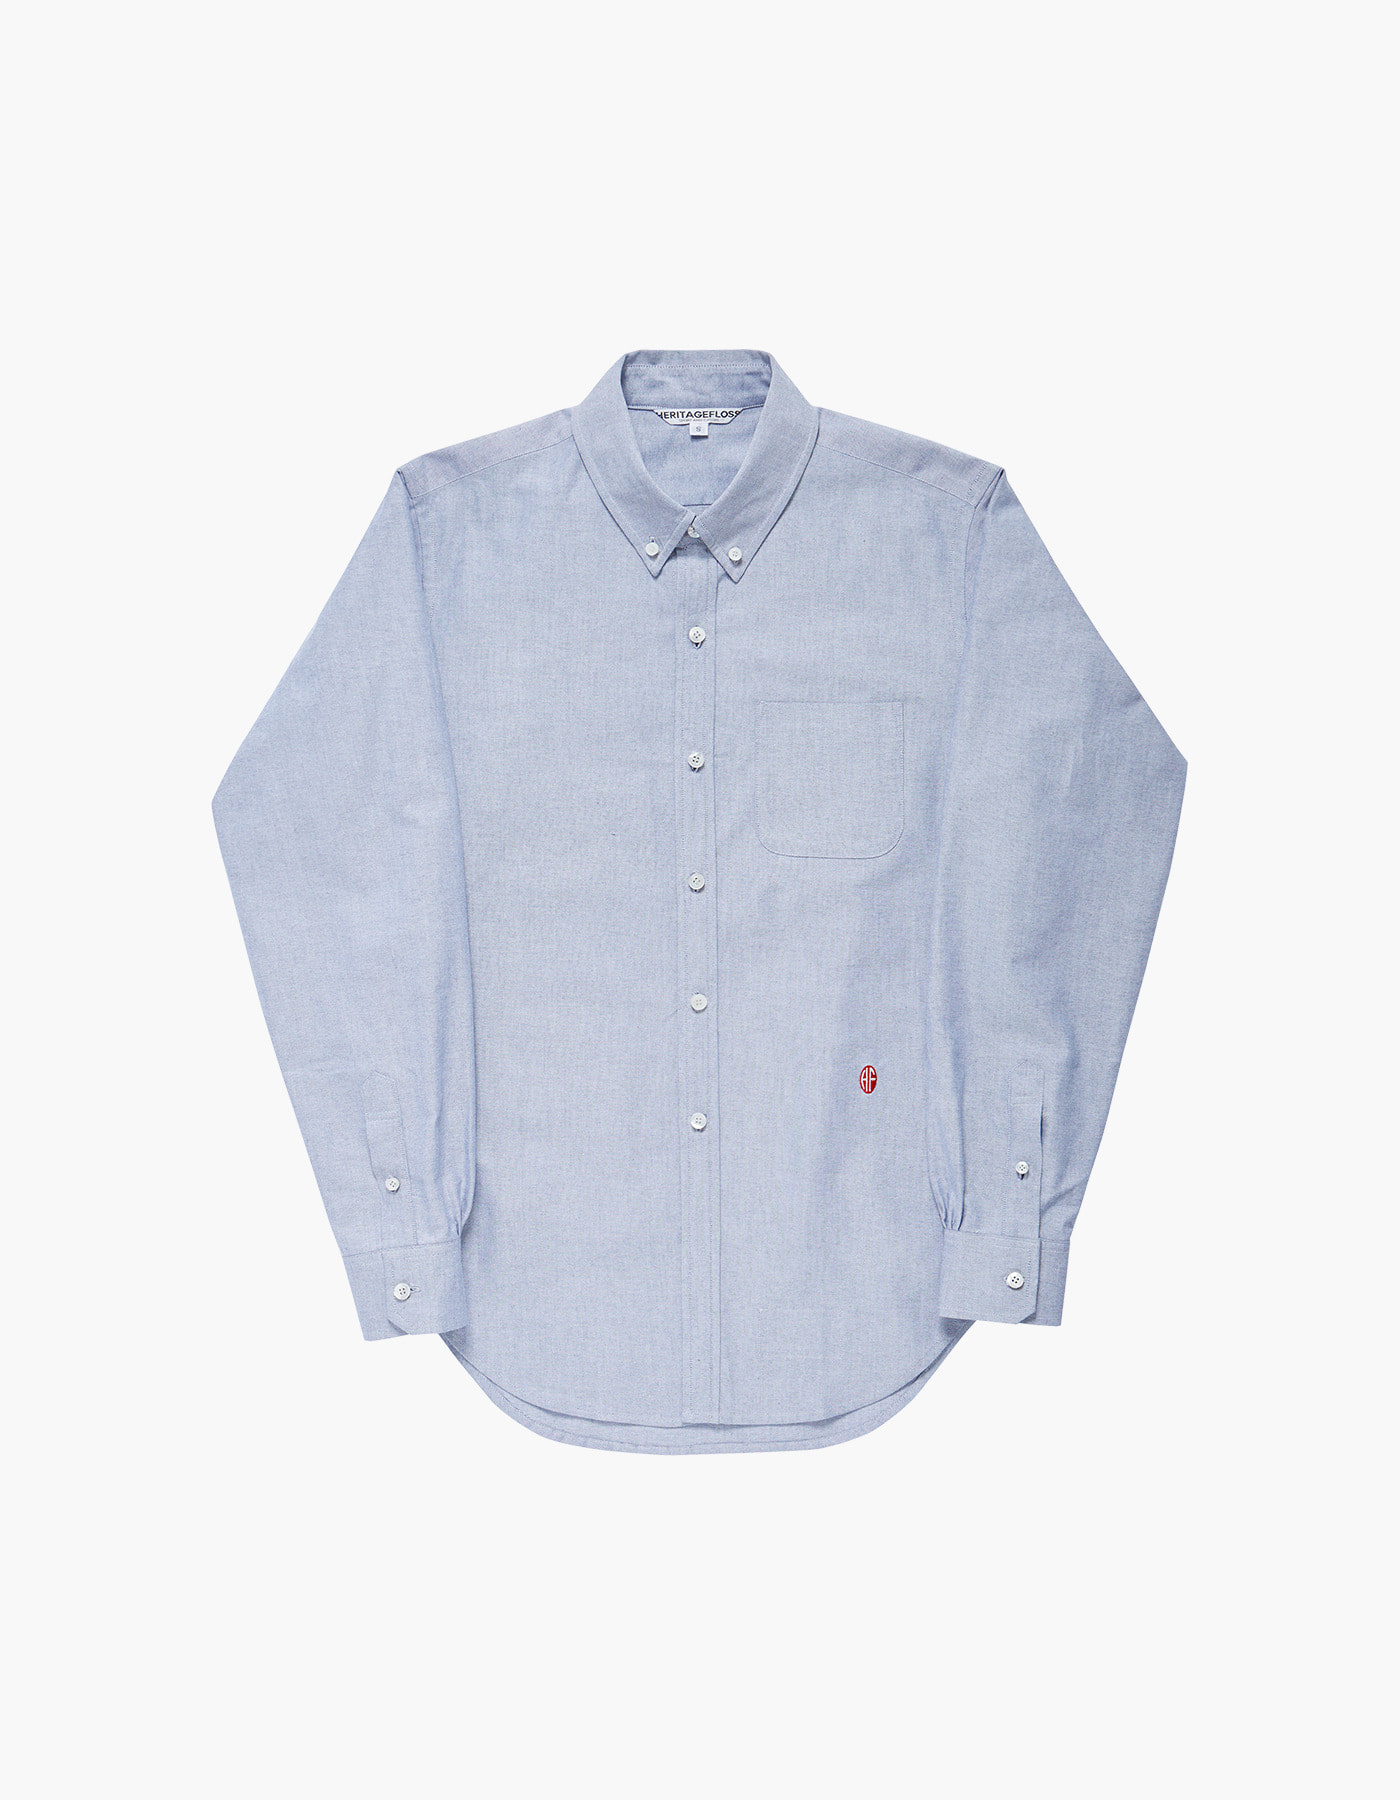 NON-WASHED OXFORD SPORT SHIRTS / NAVY